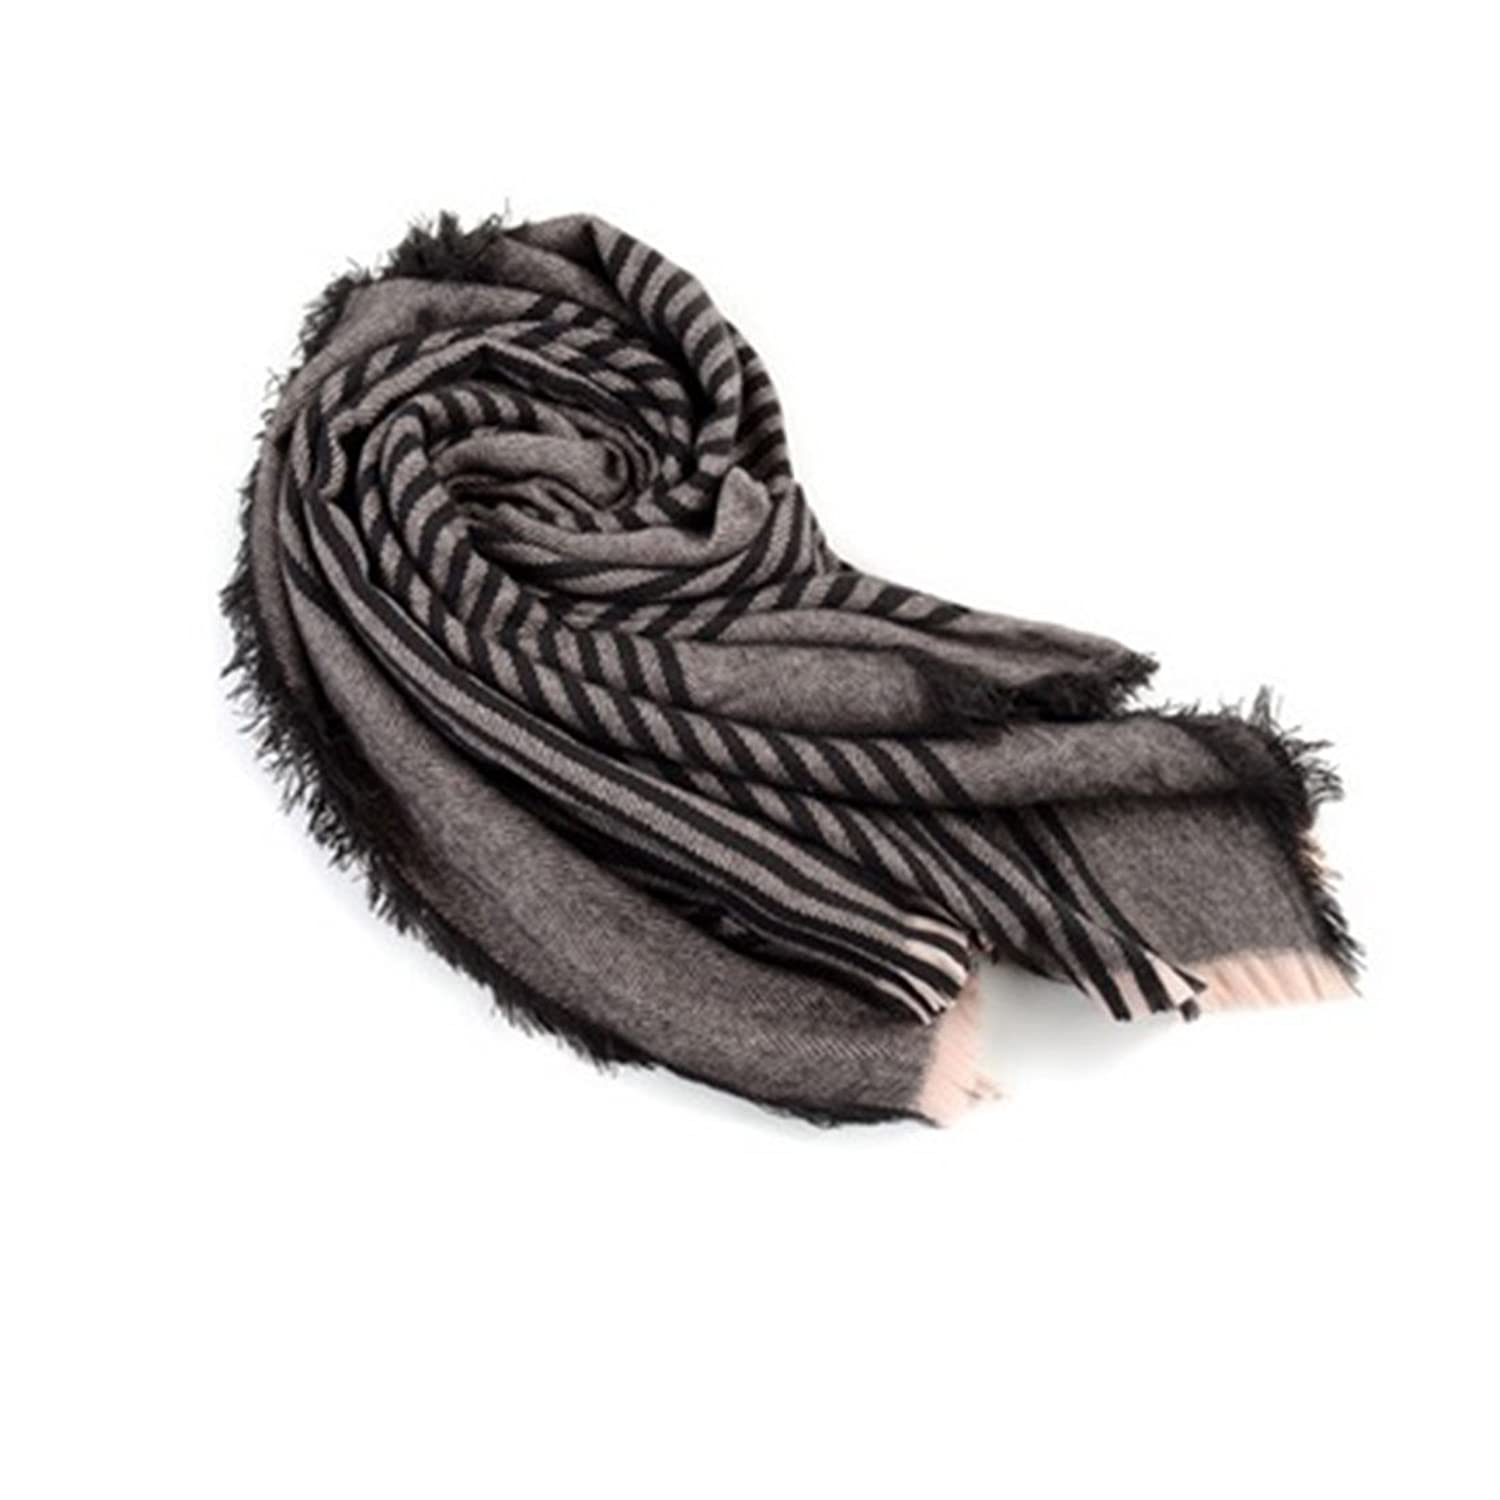 2016 Women's Cozy Tartan Scarf Wrap Shawl Neck Stole Warm Plaid Checked Pashmina (Dark Gray)